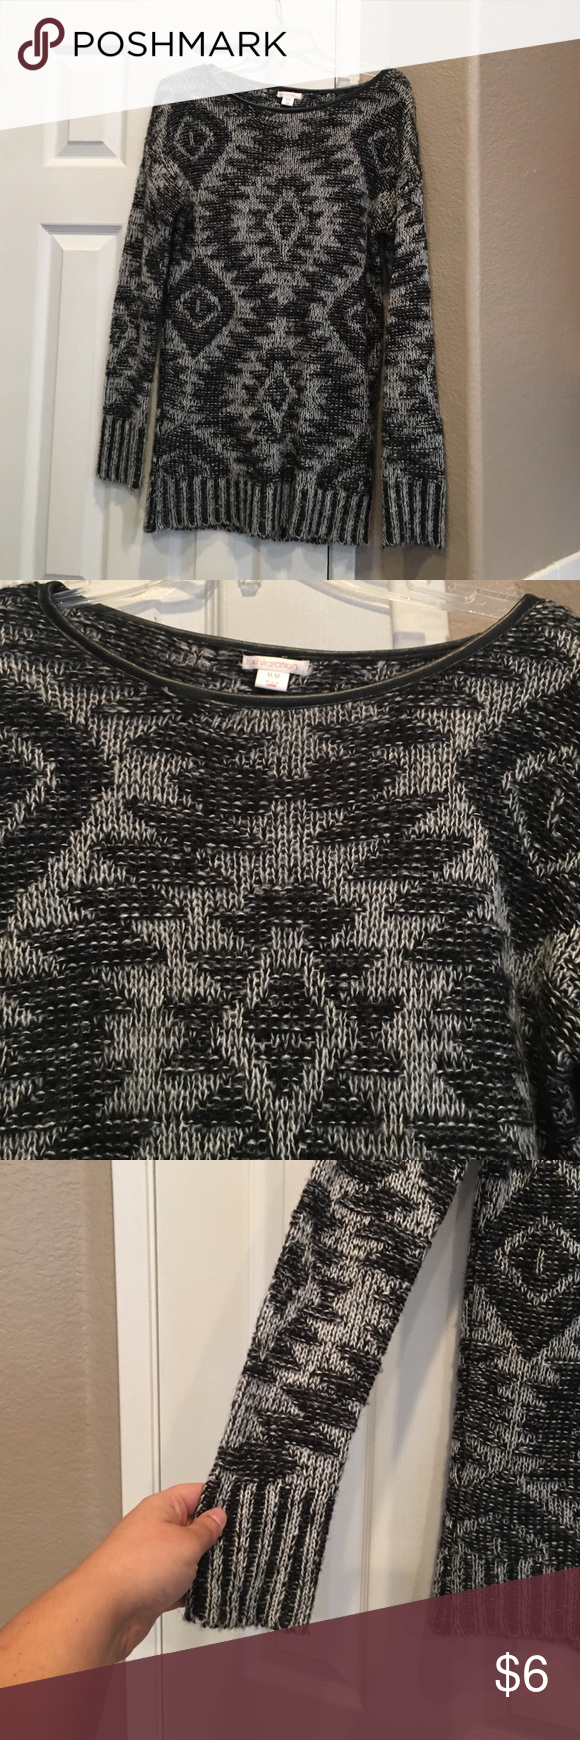 Women's Sweater Shirt Pairs great with leggings. Knitted type Sweater. Xhilaration Sweaters Crew & Scoop Necks